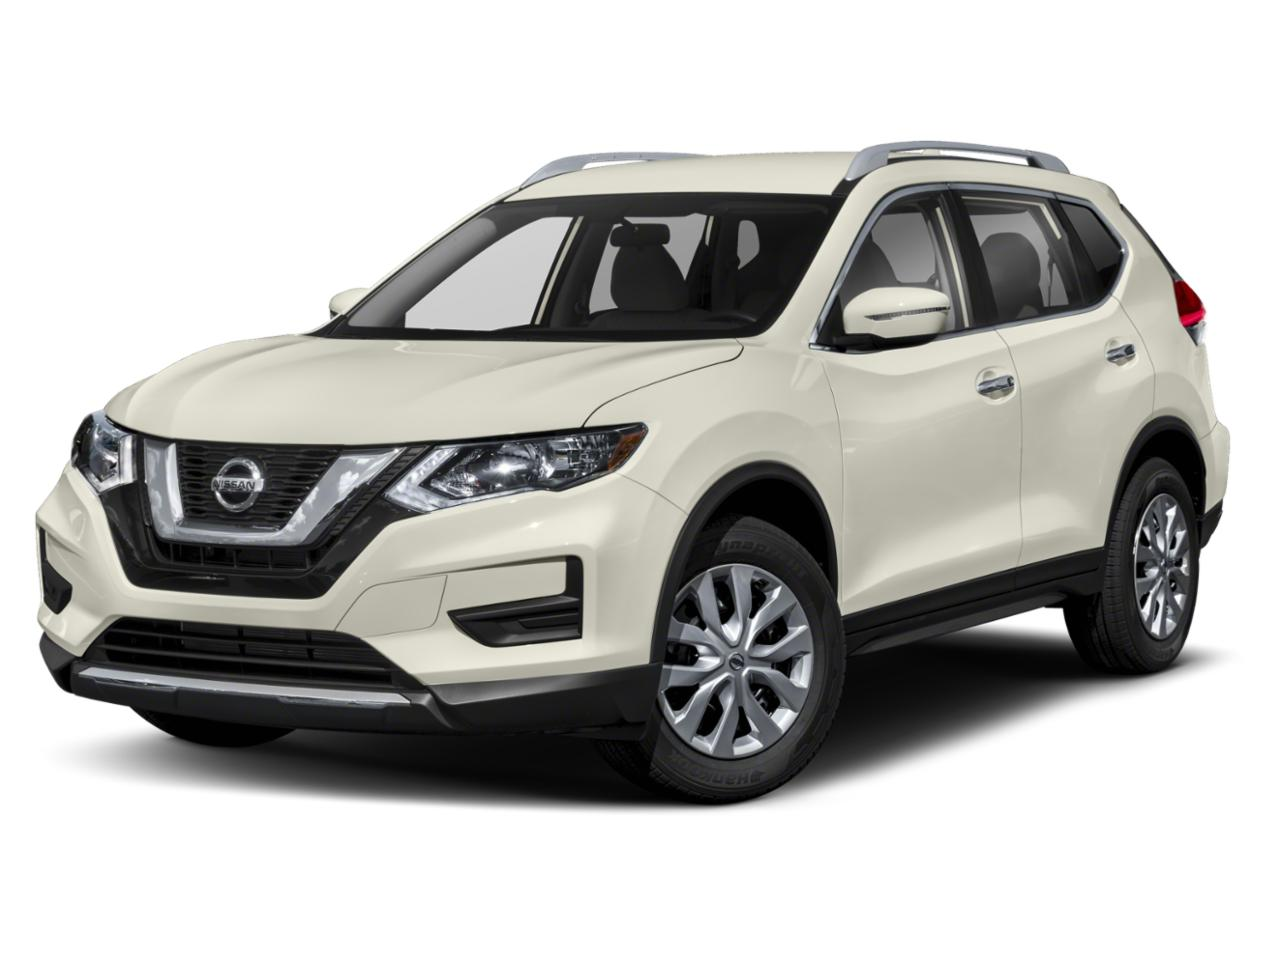 2018 Nissan Rogue Vehicle Photo in Nashua, NH 03060